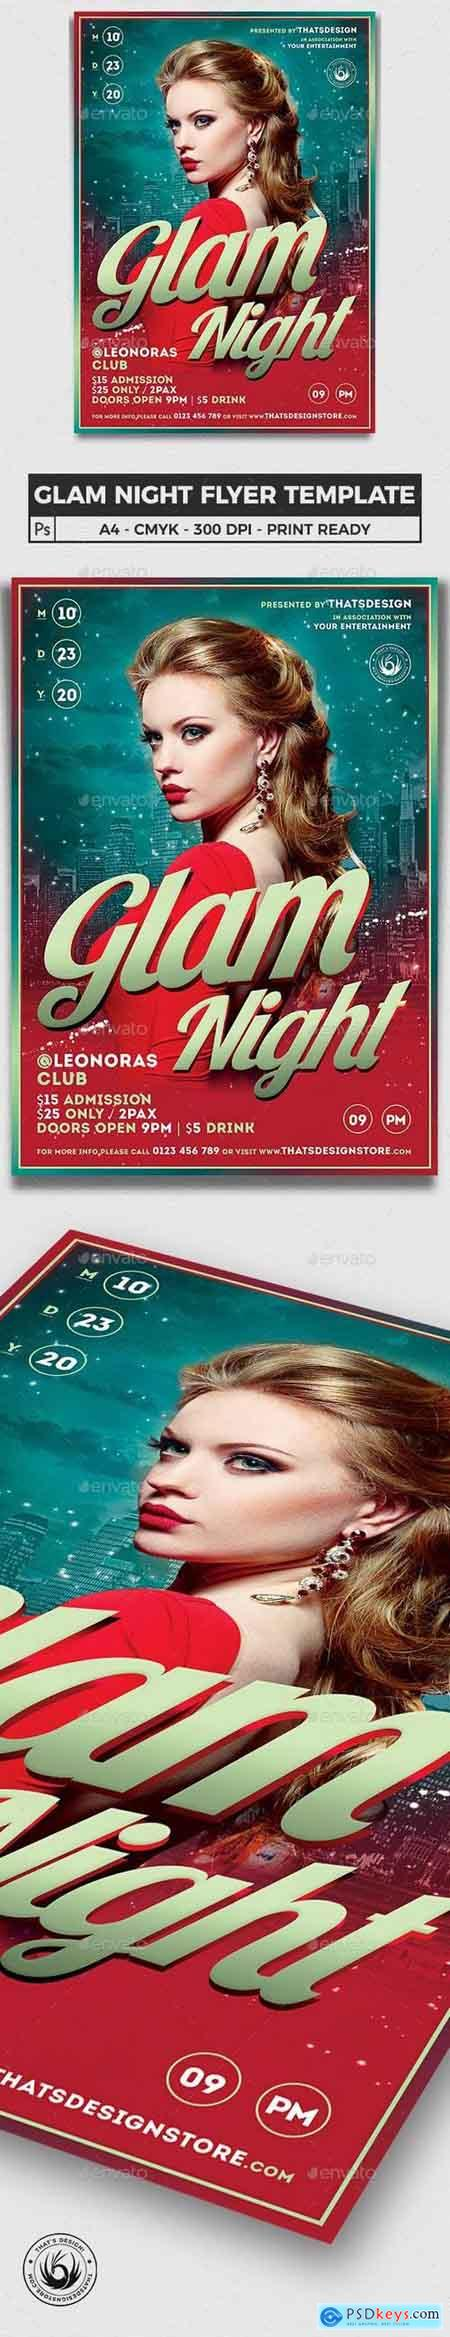 Glam Night Flyer Template